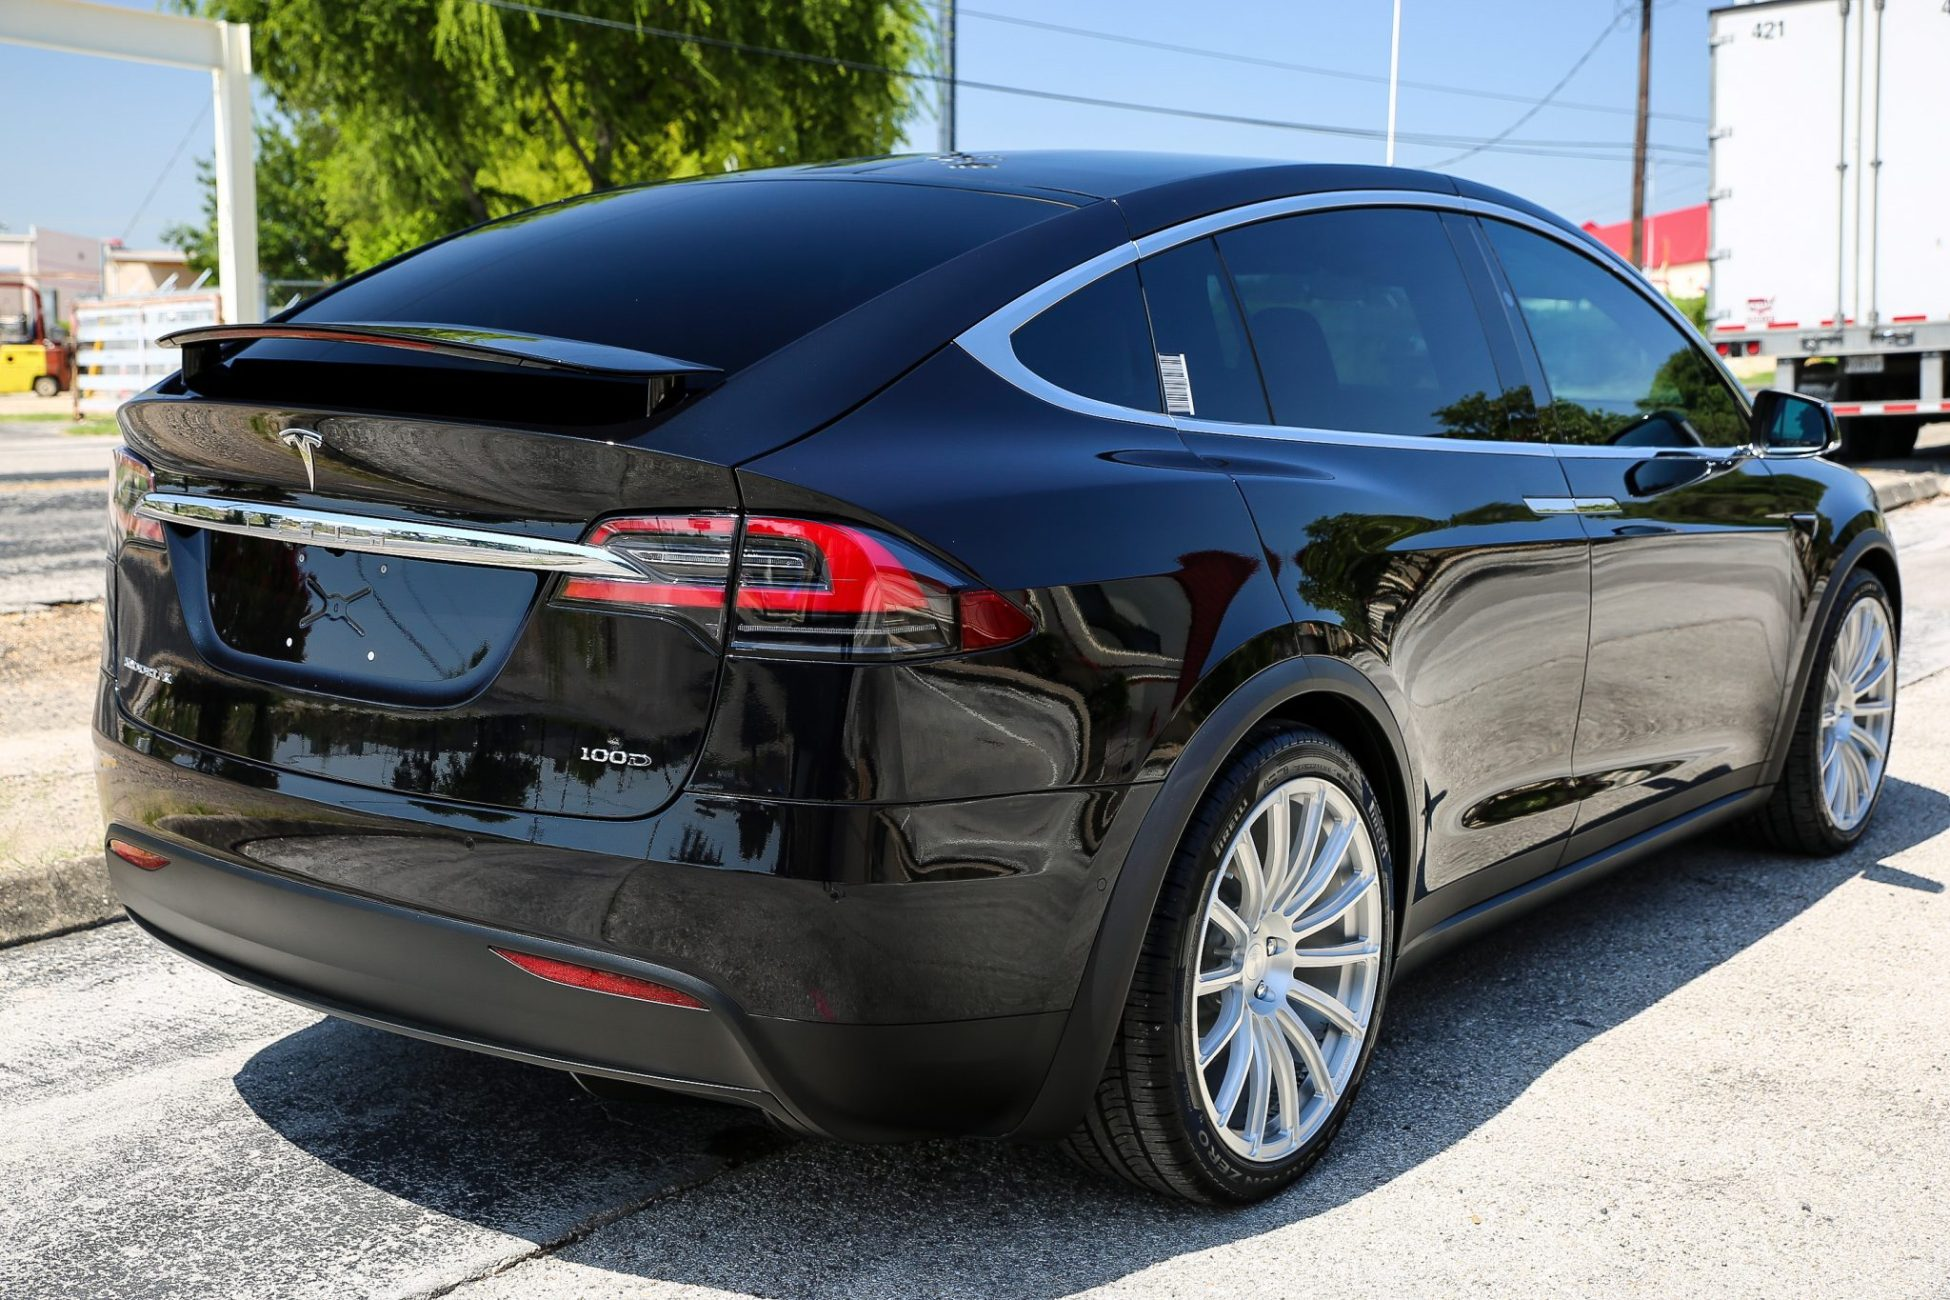 This Tesla Mothership Receives Paint Protection Forcefield